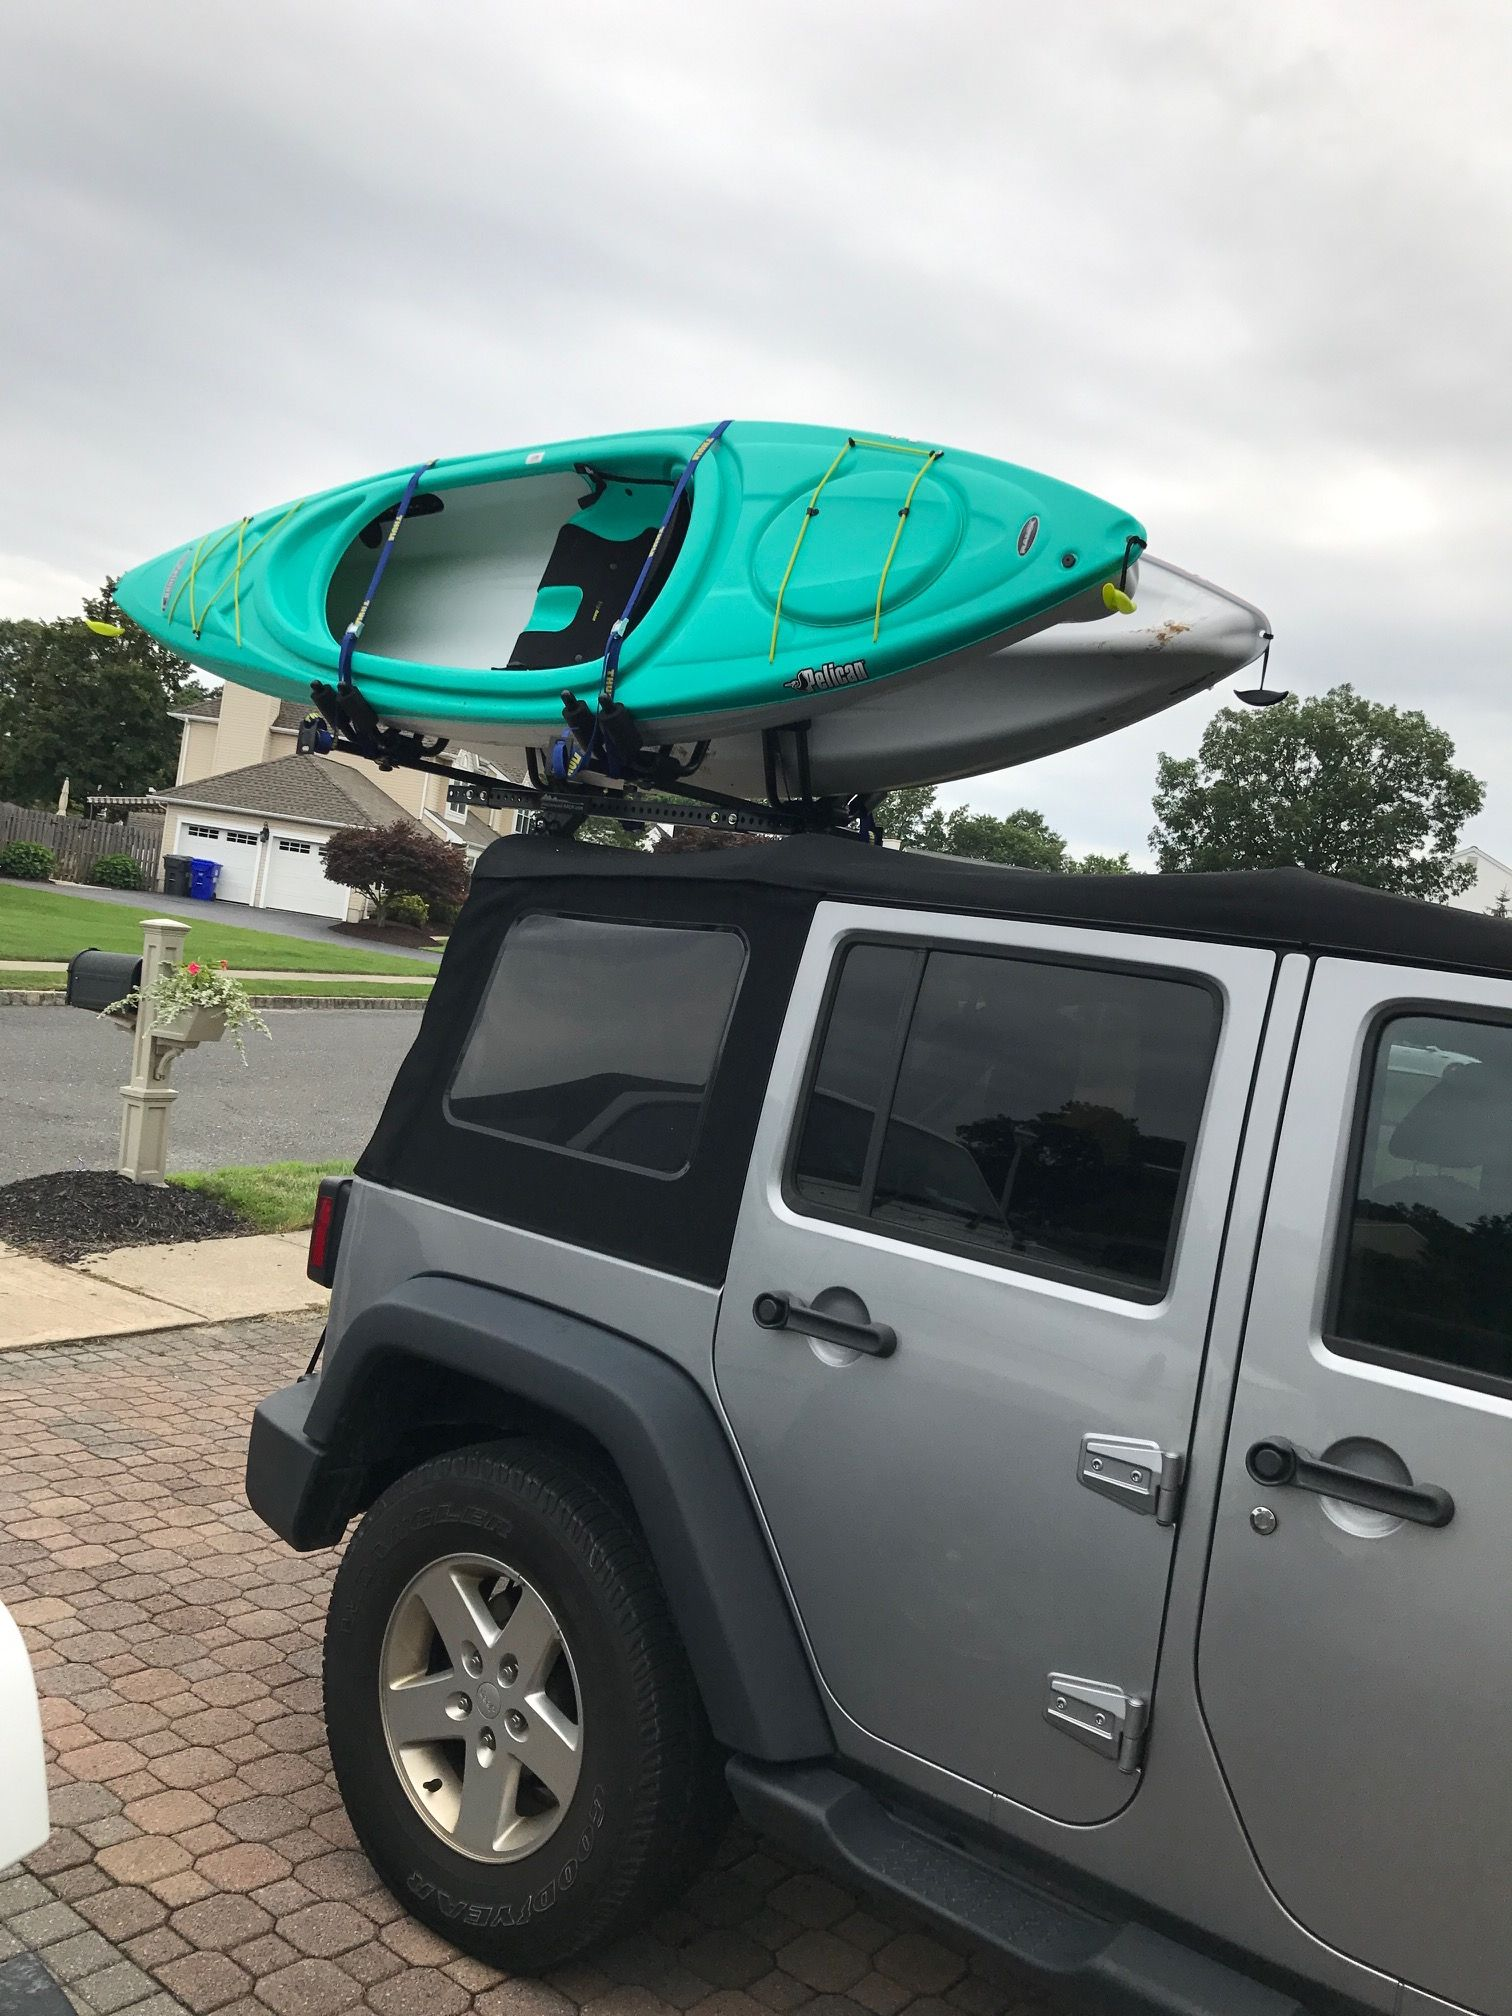 Jeep Wrangler With The Hitchmount Rack System Holding Two Kayaks